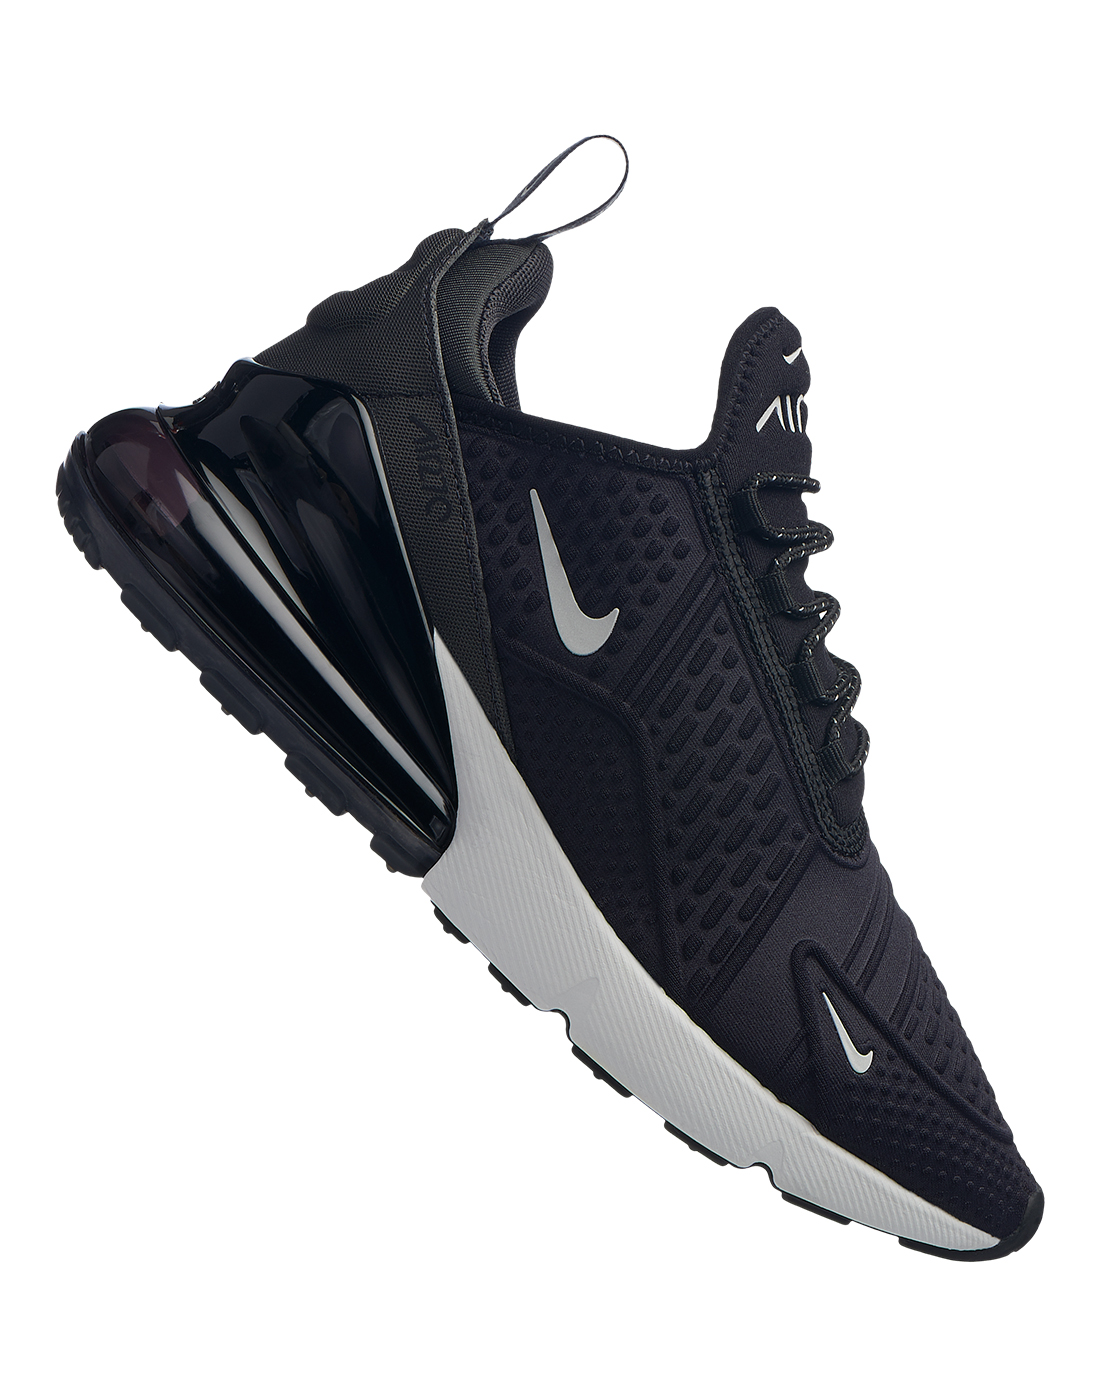 Special Edition Nike Air Max 270